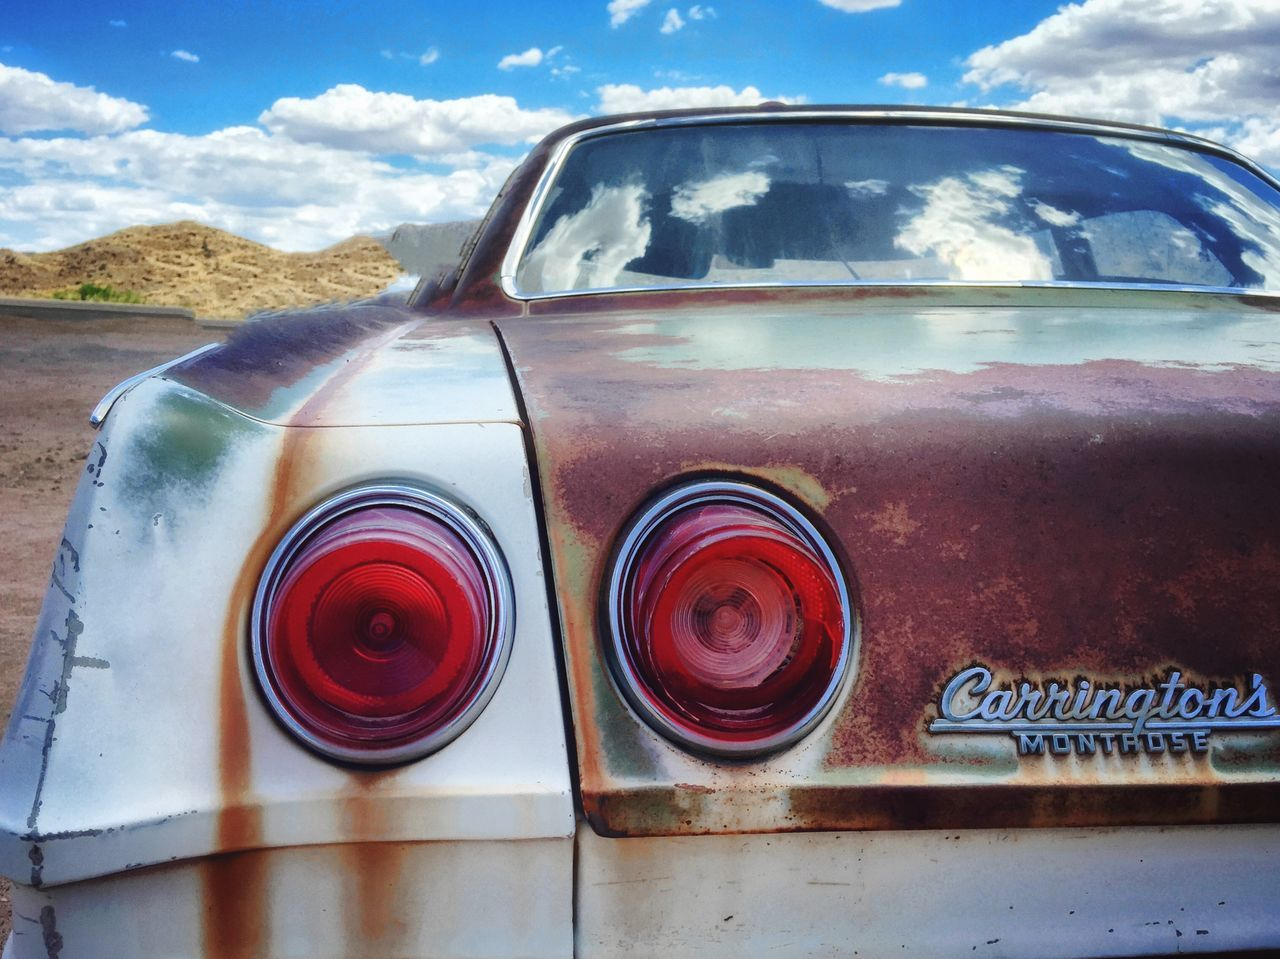 '65 Chevy Belaire. Come on, let's cruise Route 66!! Beauty Of Decay Tadaa Community There Be Dragons OpenEdit Streamzoofamily AMPt_community What Does Music Look Like To You? Vintage Showing Why I Could Be An Open Editor Melancholic Landscapes